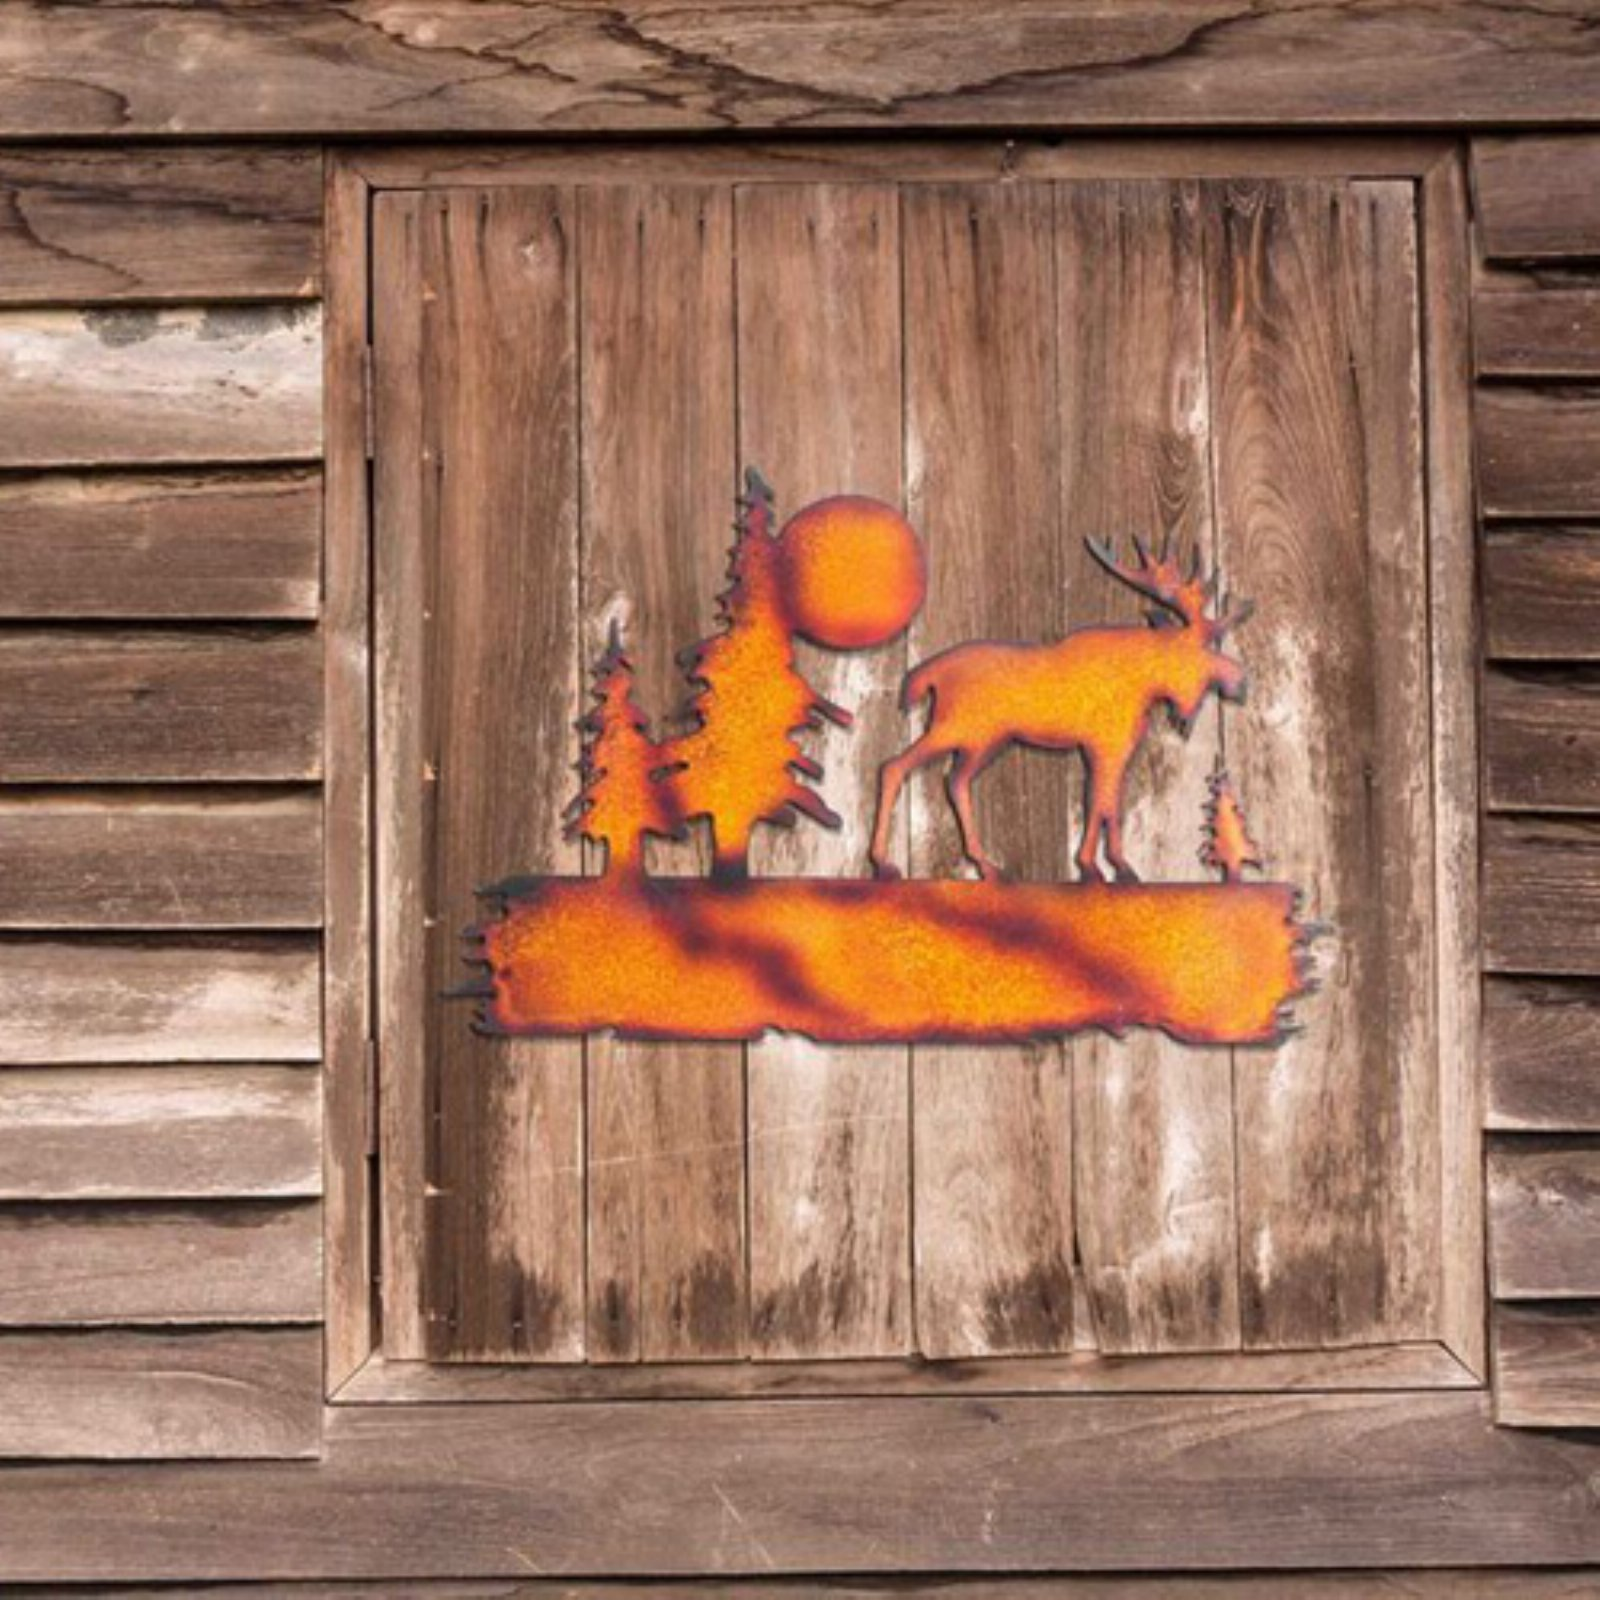 Sunjoy 110311025 Moose Laser-Cut Metal Wall Decor, Rust Finish, 25""